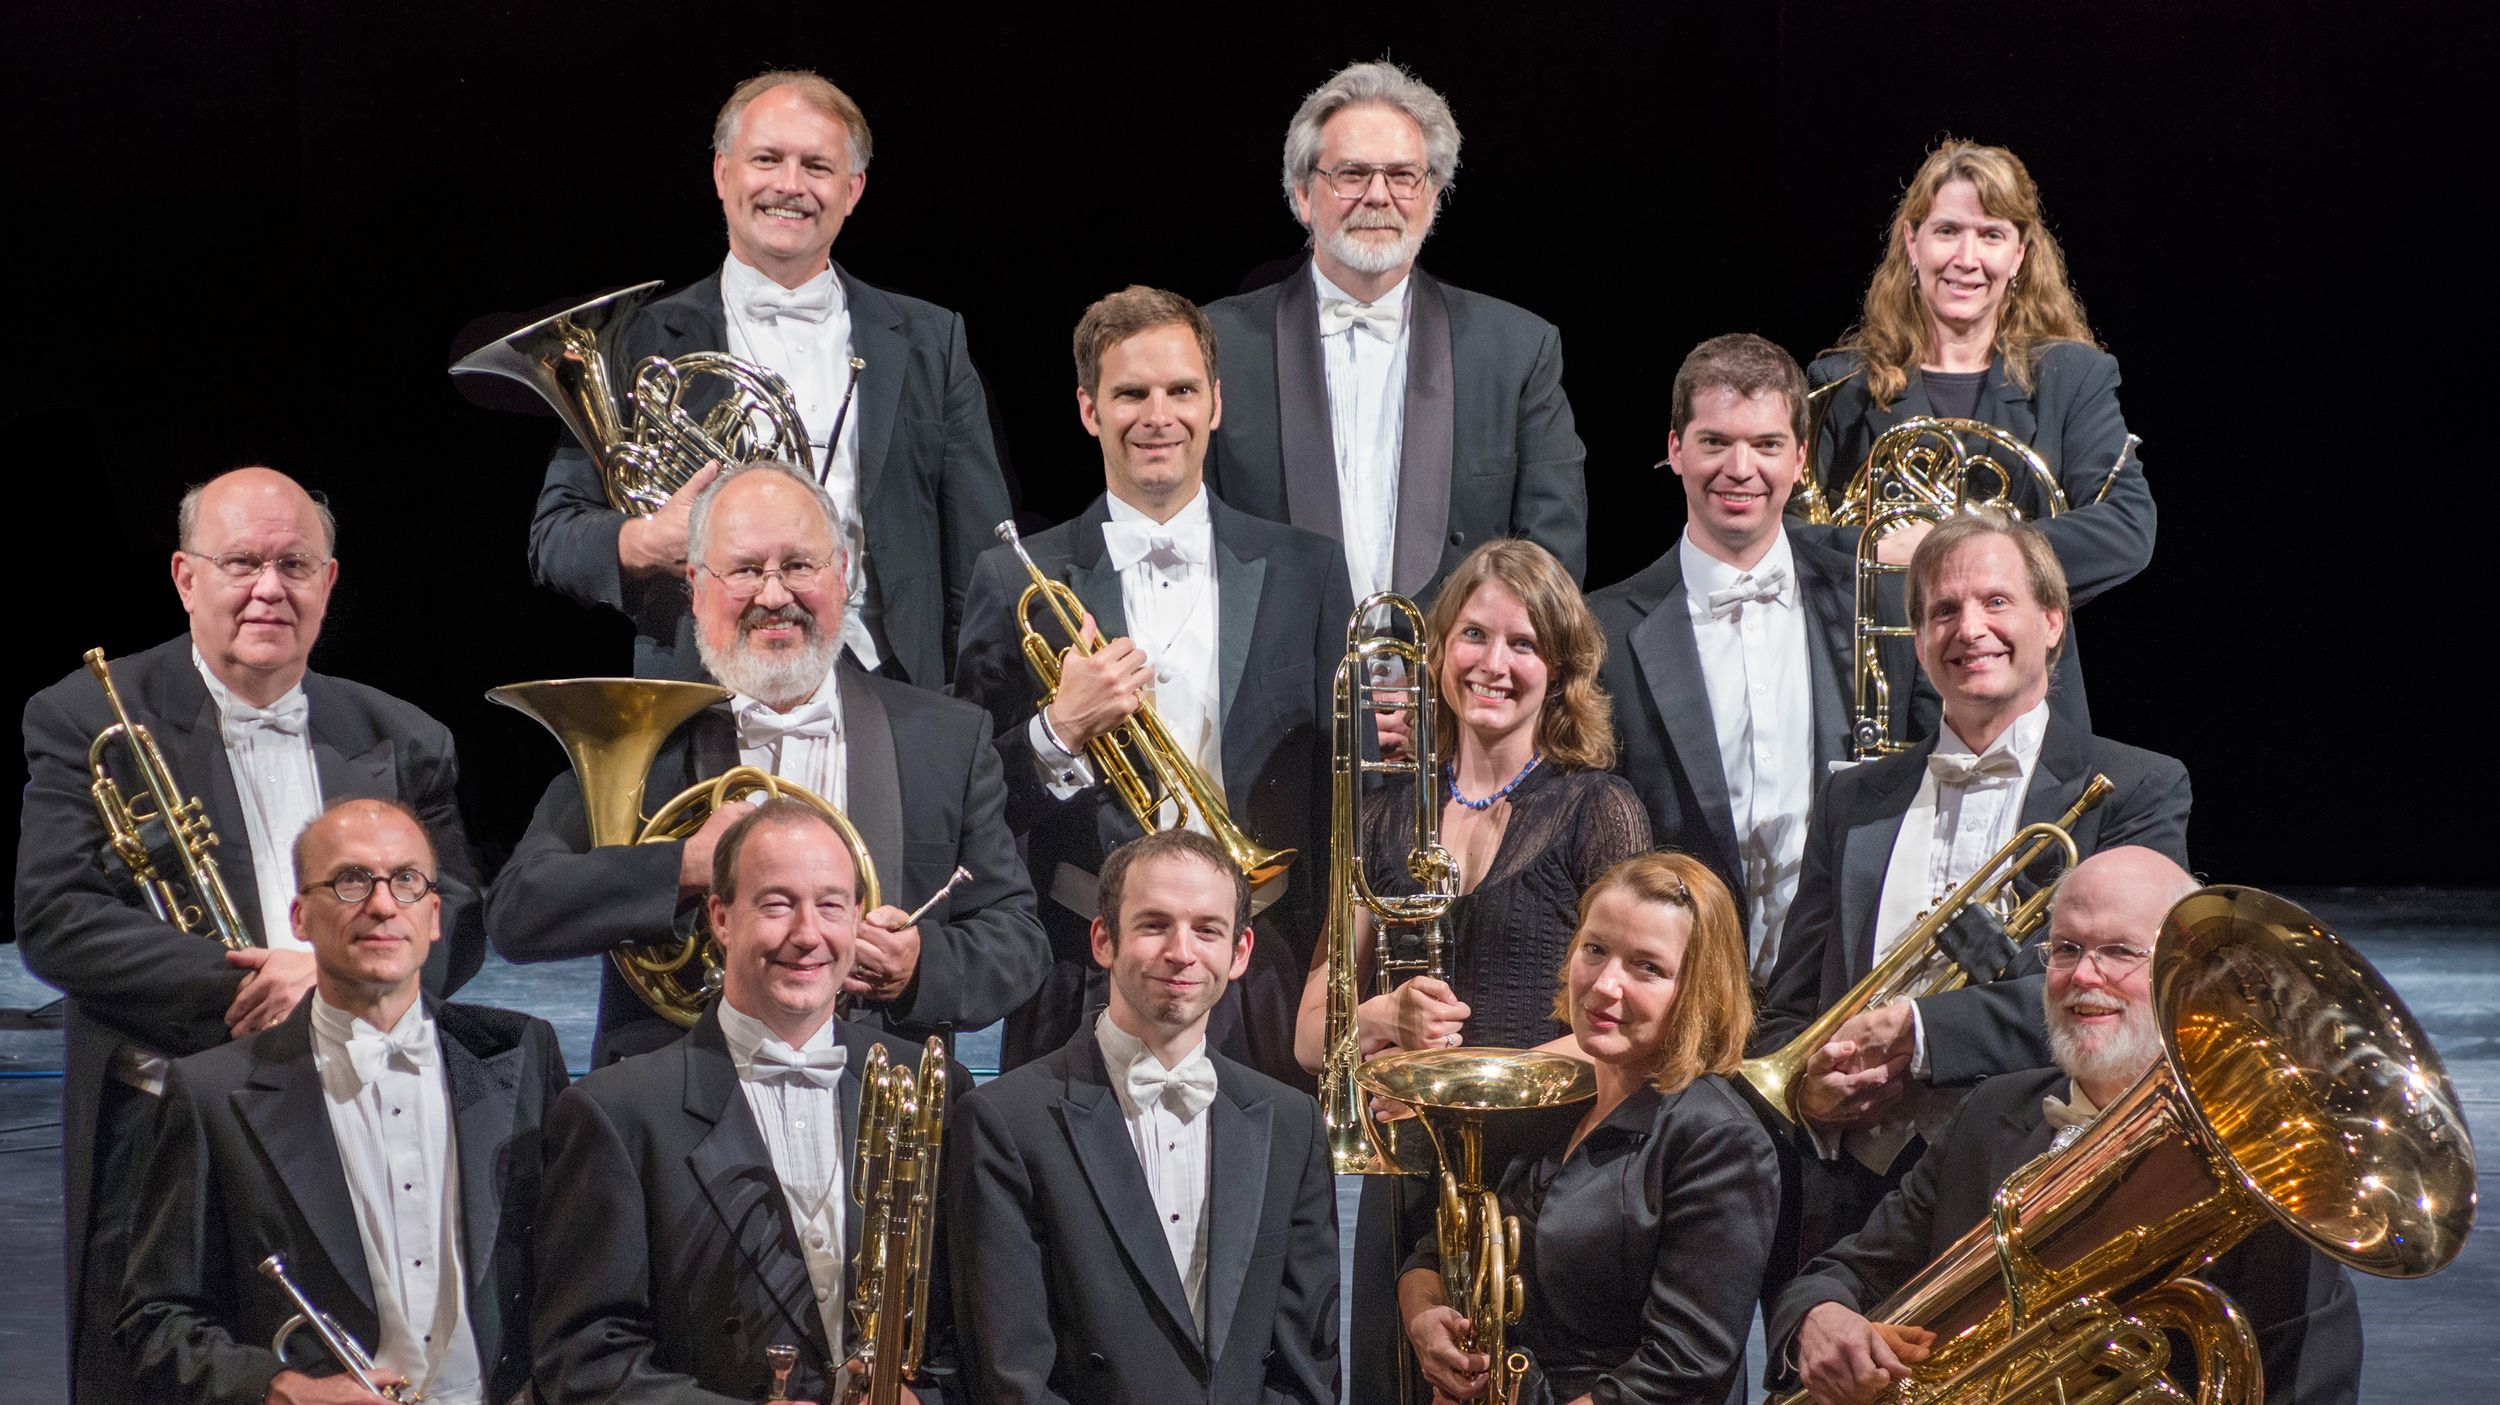 Clarion Brass Christmas 2021 Clarion Brass A Tradition Of Creativity The Spokesman Review